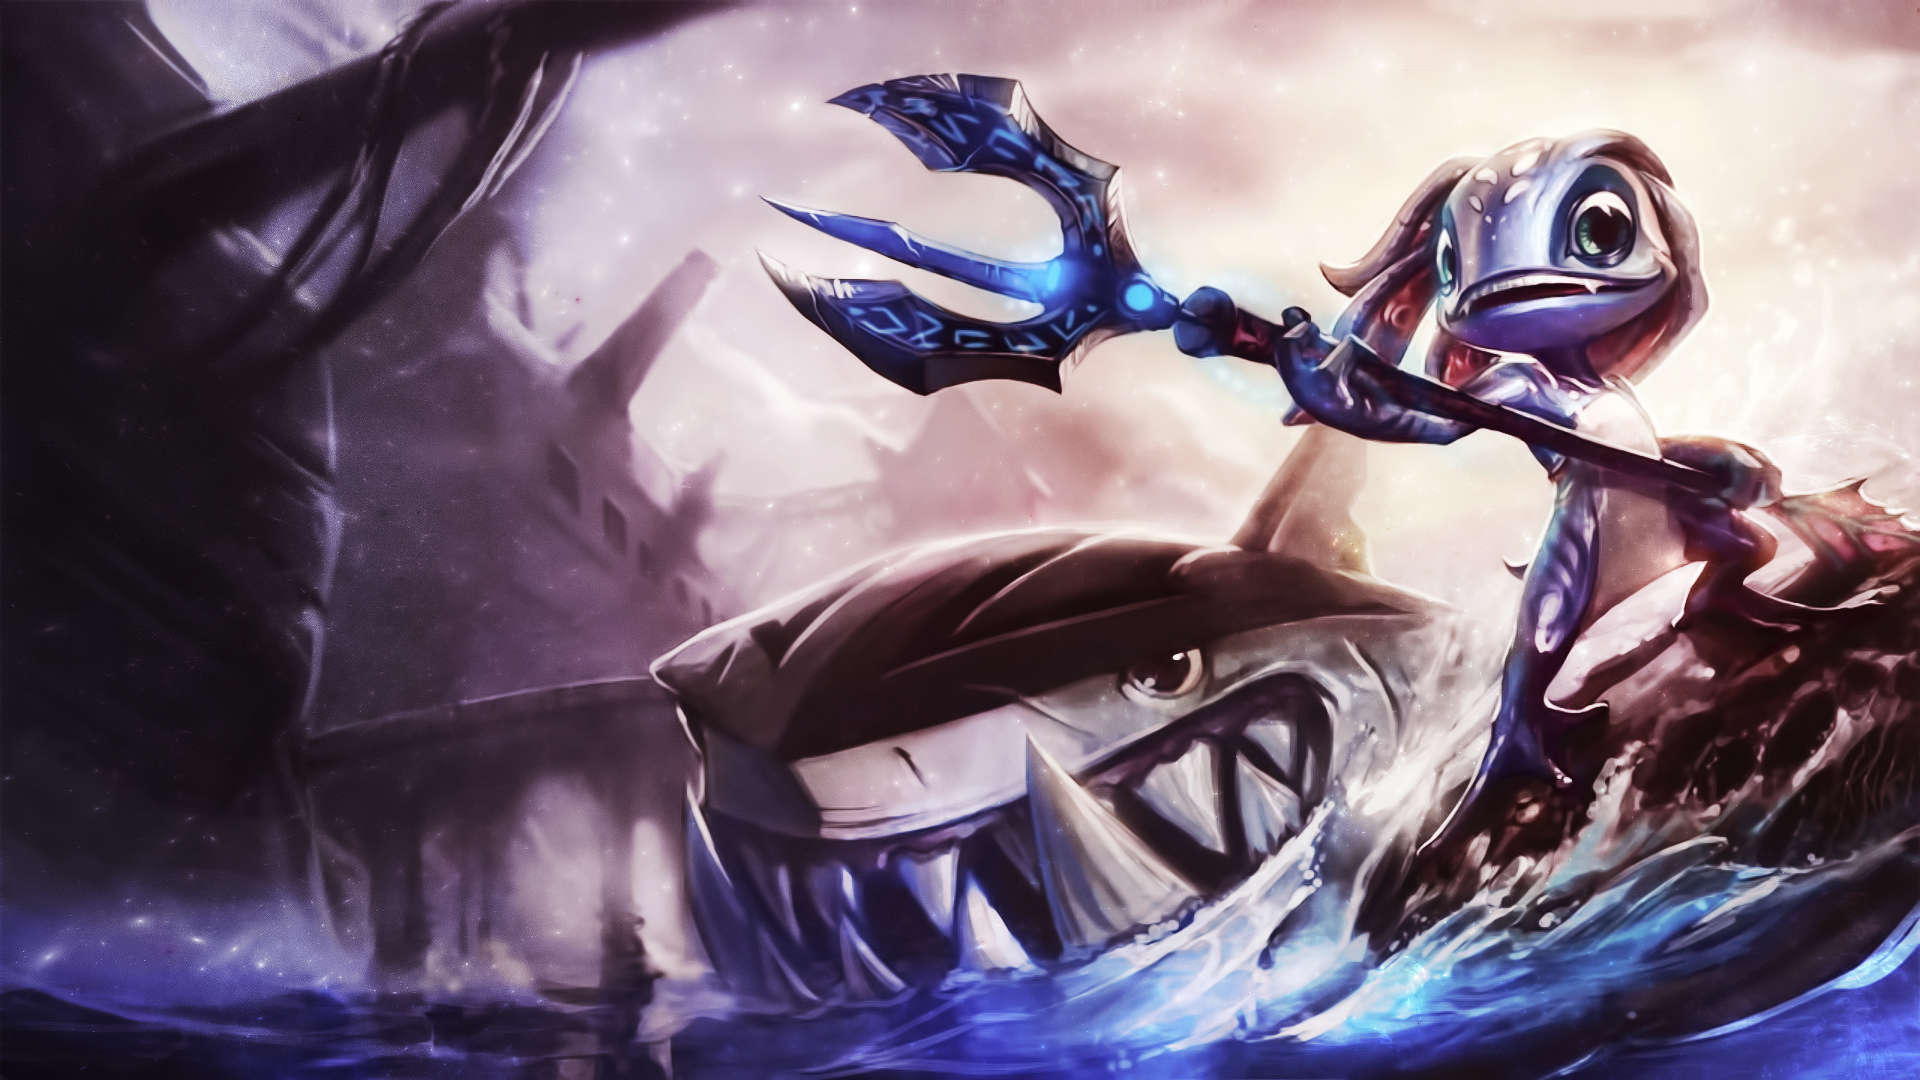 Download Wallpaper From Game League Of Legends With s Desktop Fizz